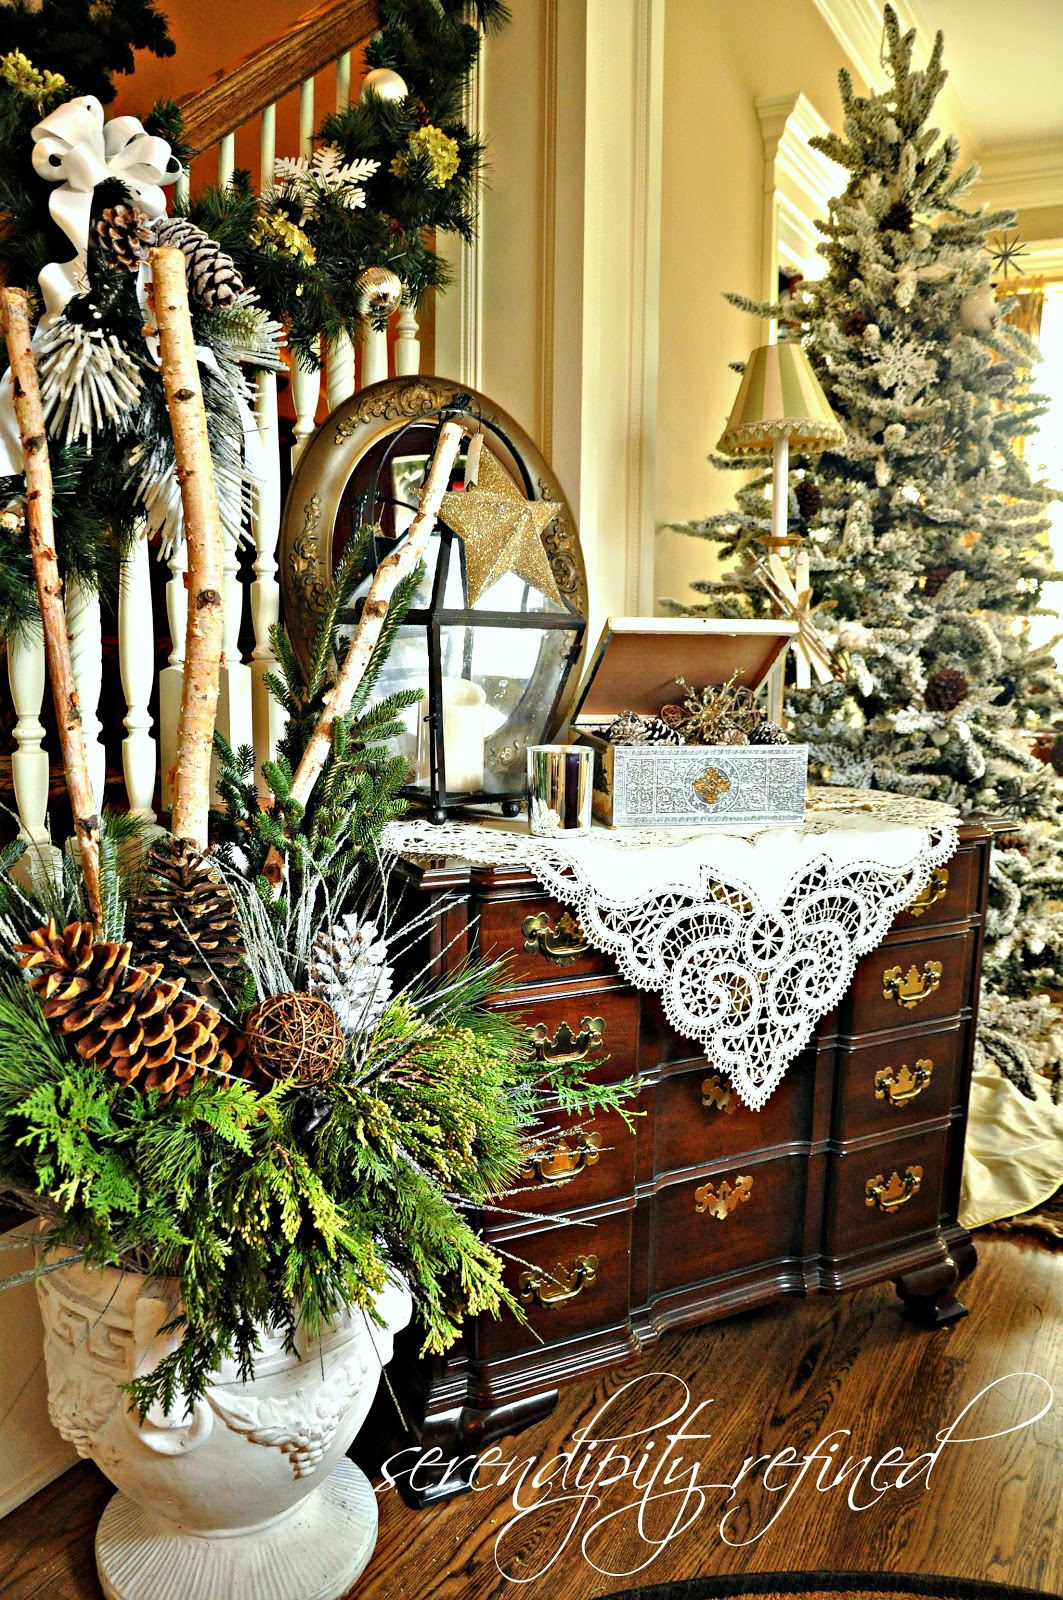 Serendipity refined blog 2012 holiday house walk stop 19 for Foyer christmas decorating ideas